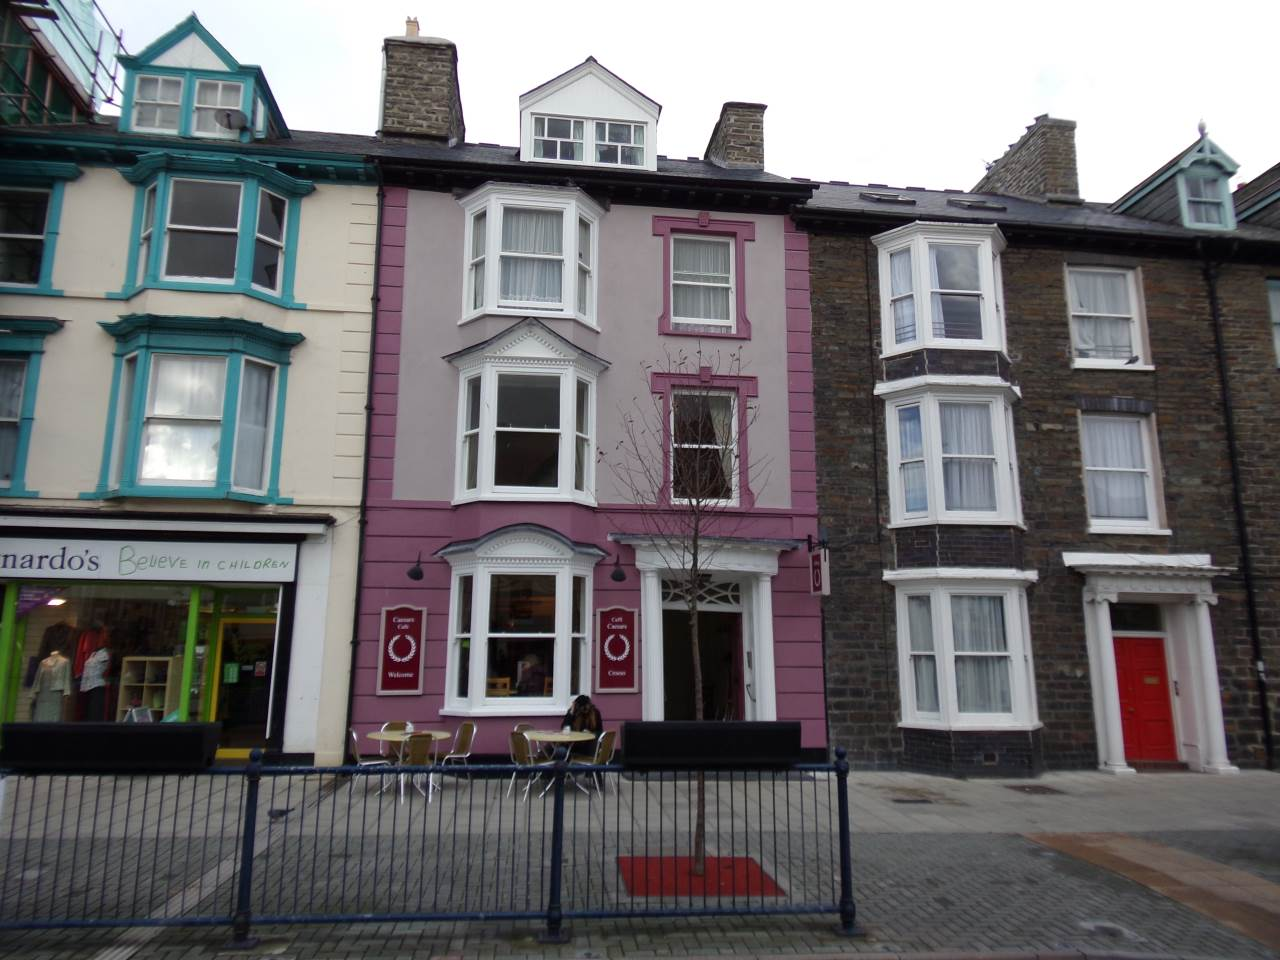 1 bed flat to rent in Aberystwyth, Ceredigion - Property Image 1